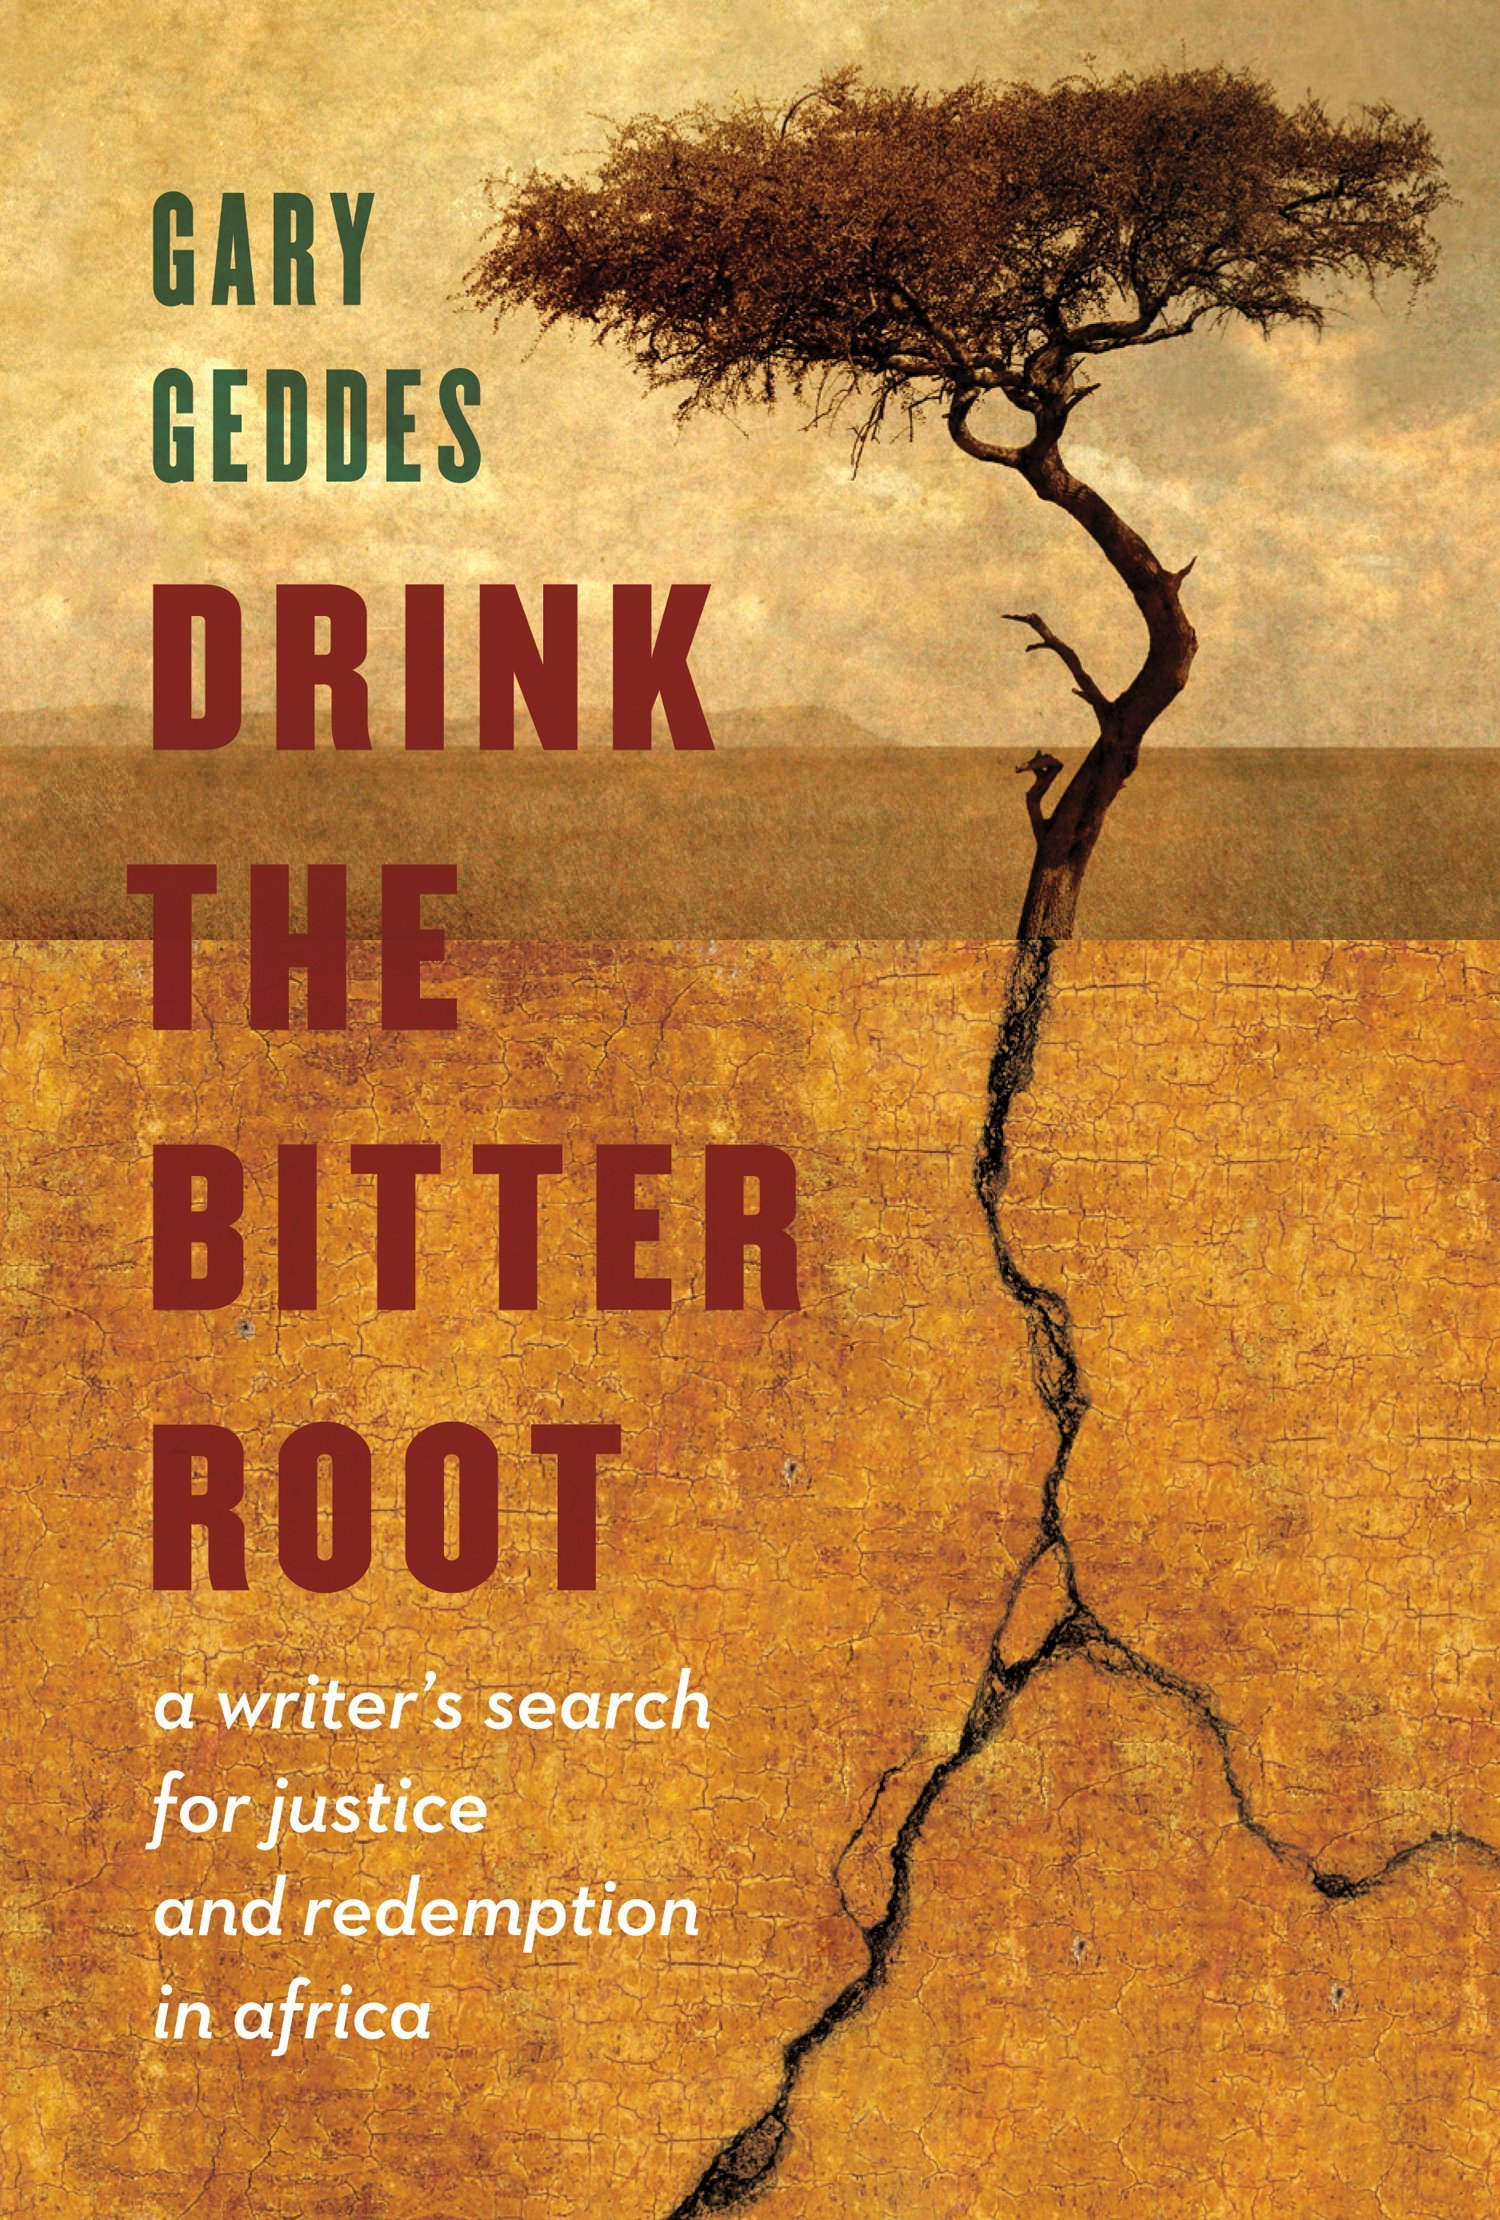 Drink the Bitter Root: A Search for Justice and Healing in Africa   [DRINK THE BITTER ROOT] [Hardcover] pdf